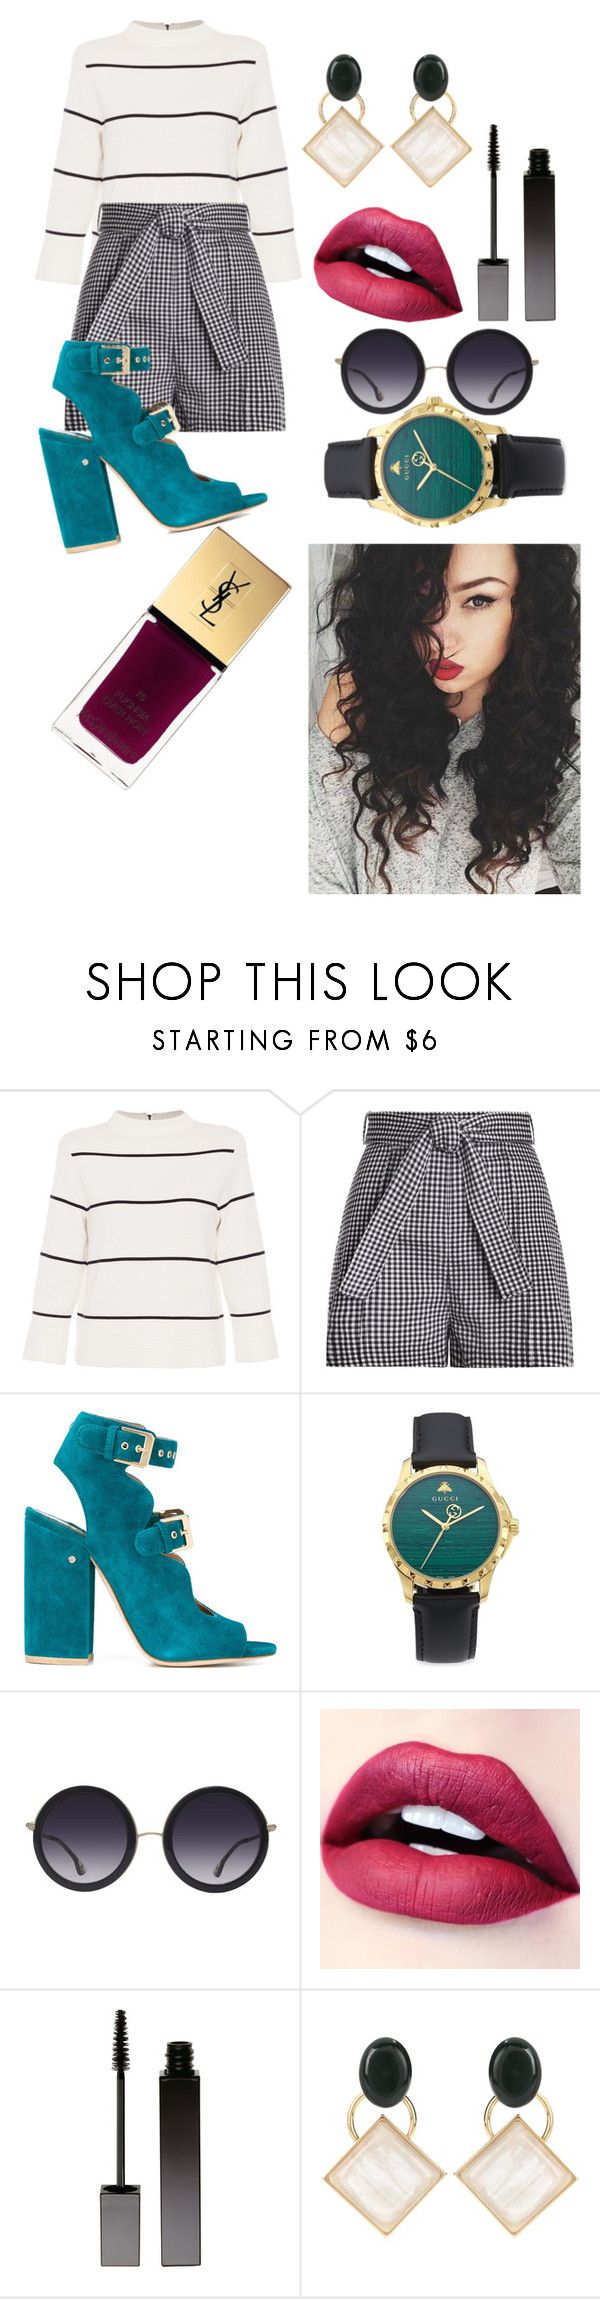 """""""Marina"""" by jolilollie on Polyvore featuring L.K.Bennett, Zimmermann, Laurence Dacade, Gucci, Alice + Olivia, Serge Lutens, Marni and Yves Saint Laurent"""